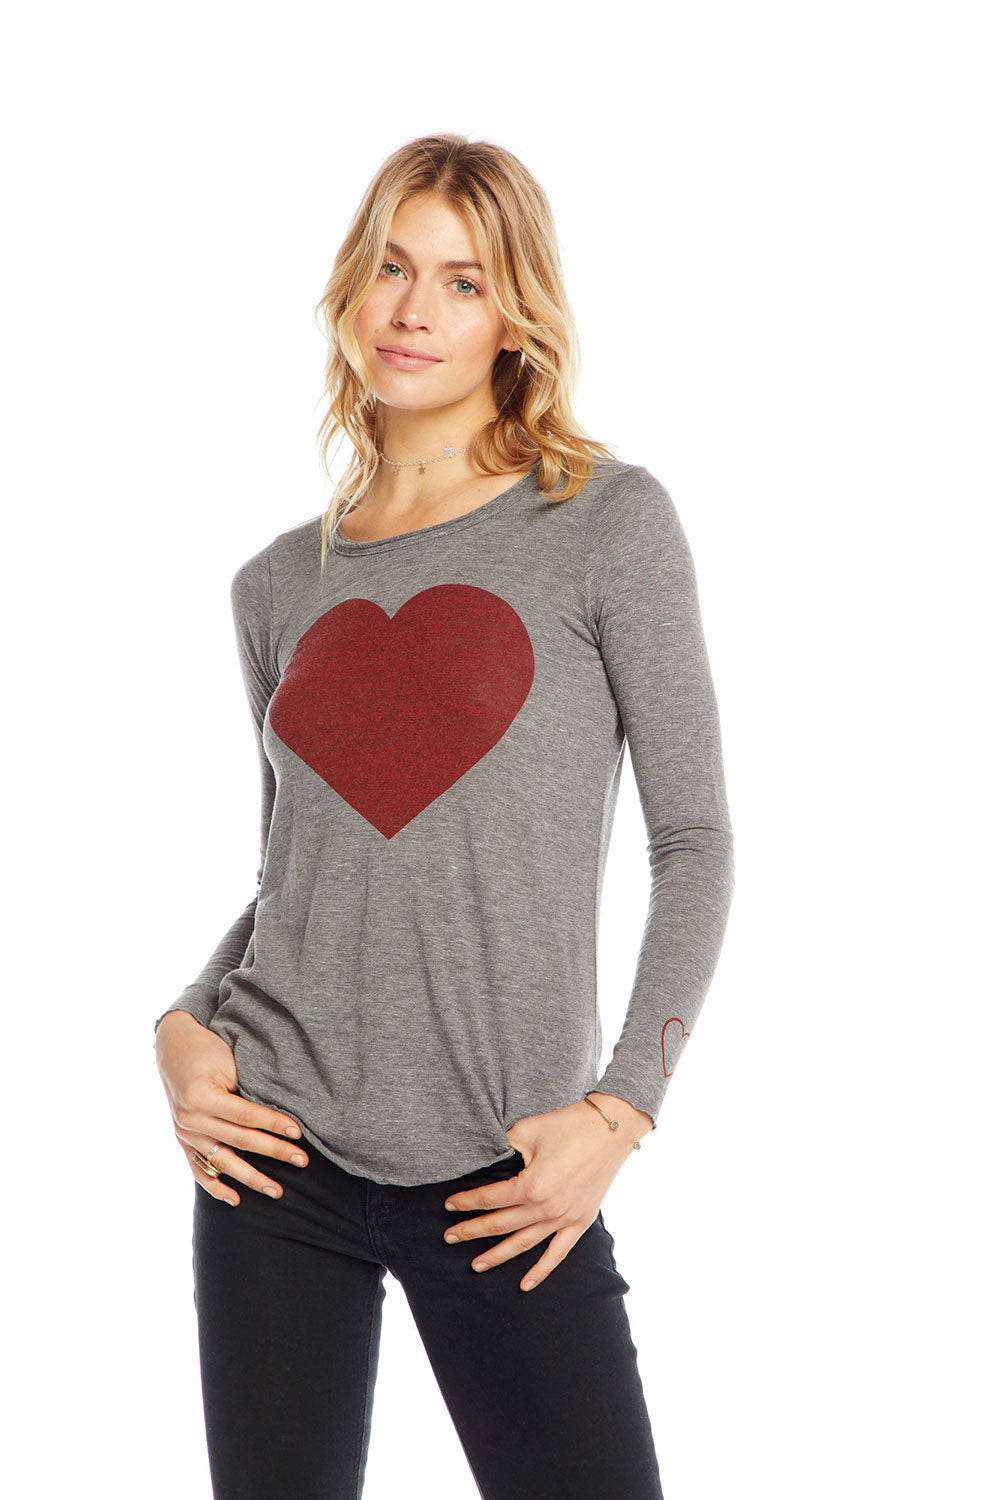 True Heart, WOMENS, chaserbrand.com,chaser clothing,chaser apparel,chaser los angeles